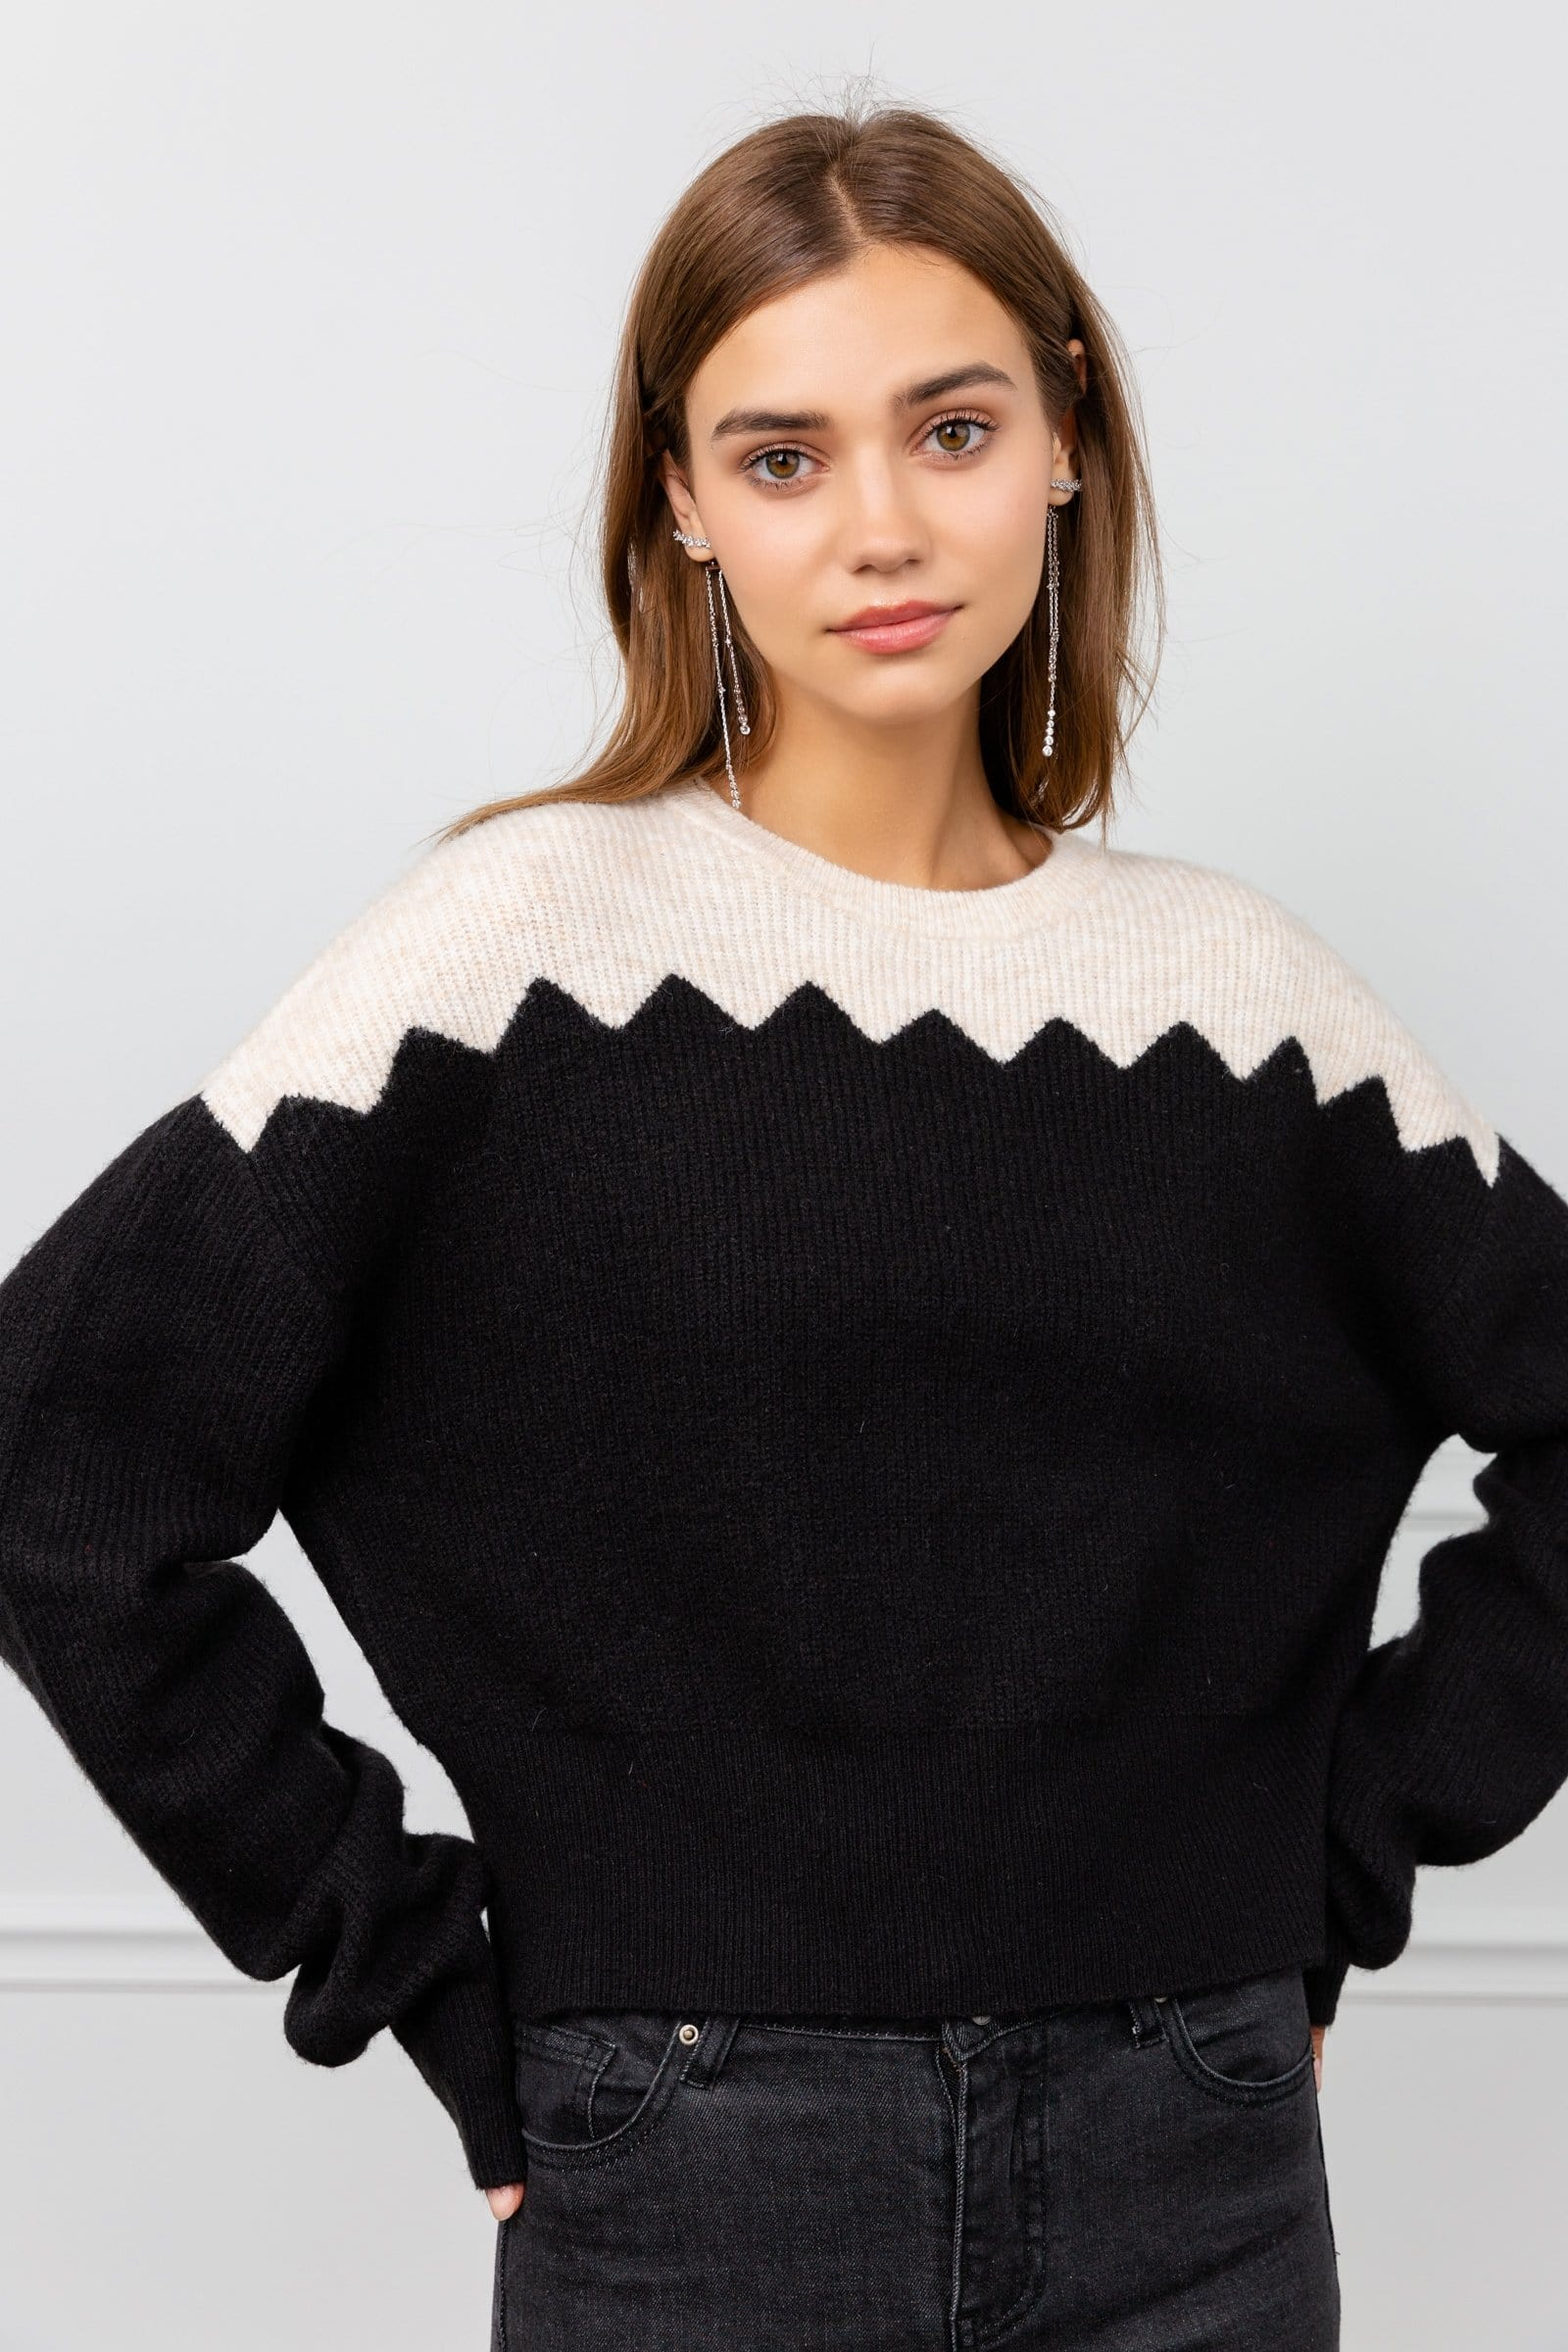 Jagger Black and White Sweater